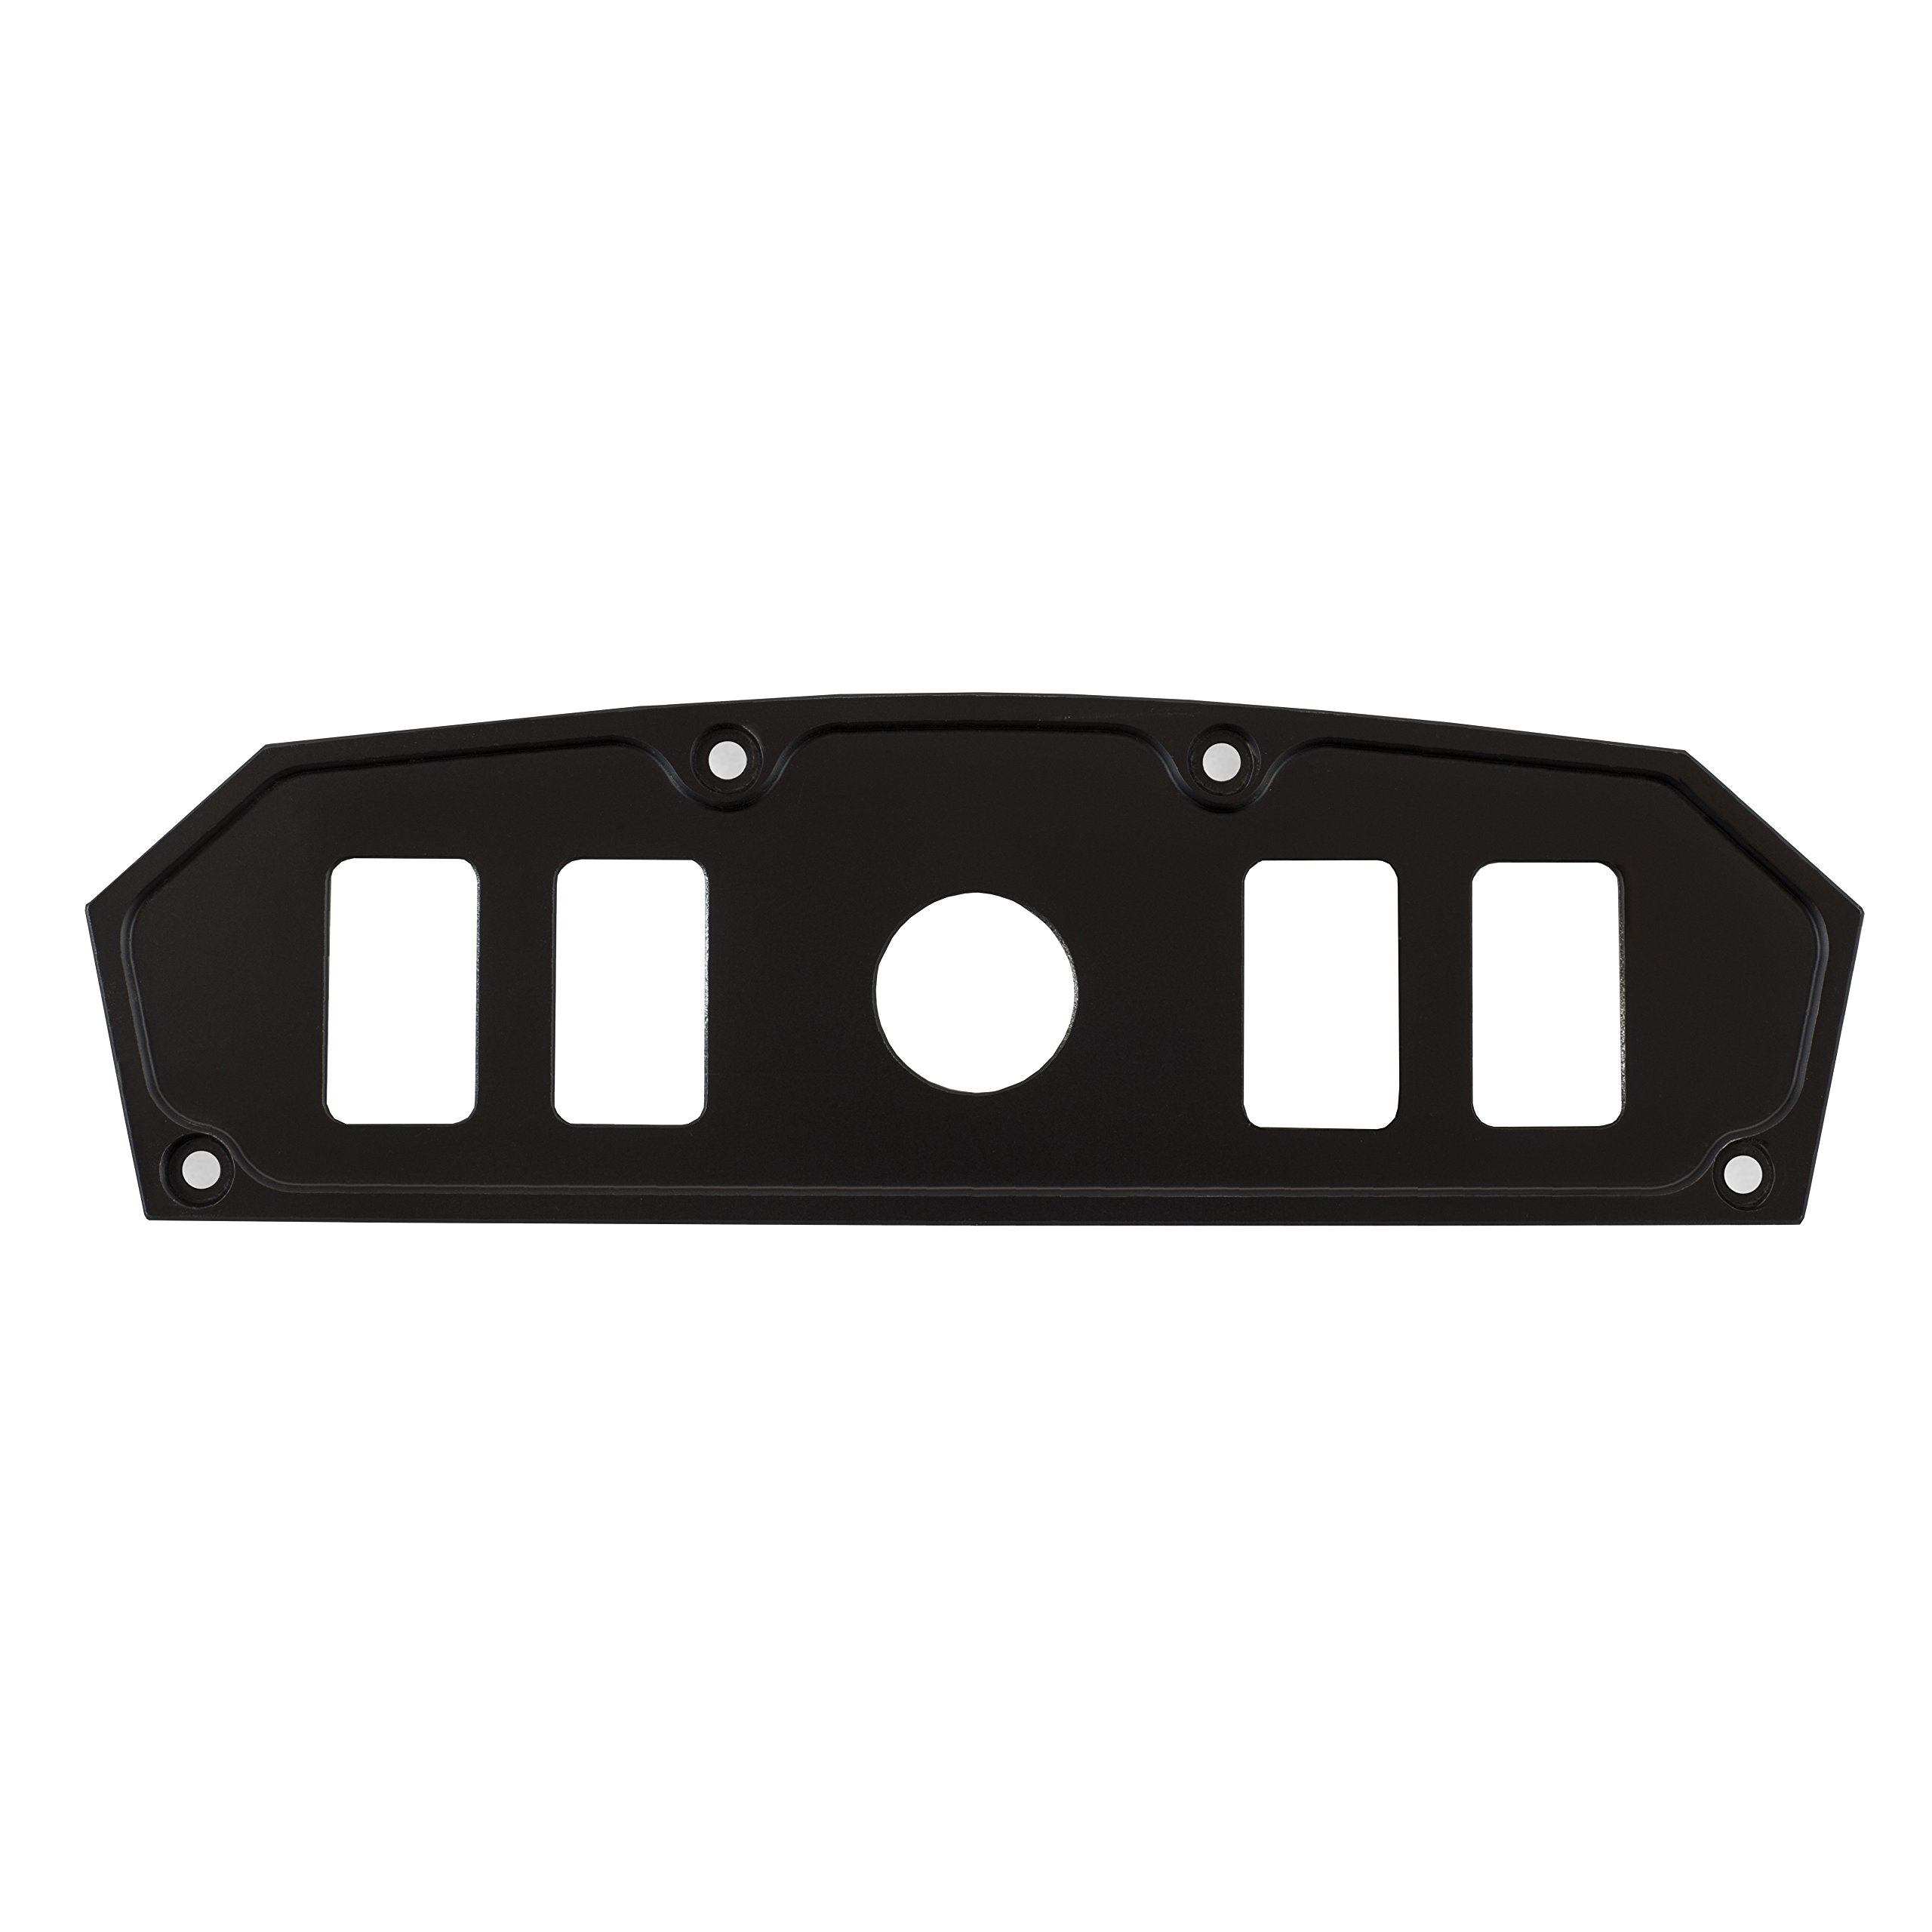 STV Motorsports Custom Switch Dash Panel for Can Am Maverick (no switches included) (4, Black)